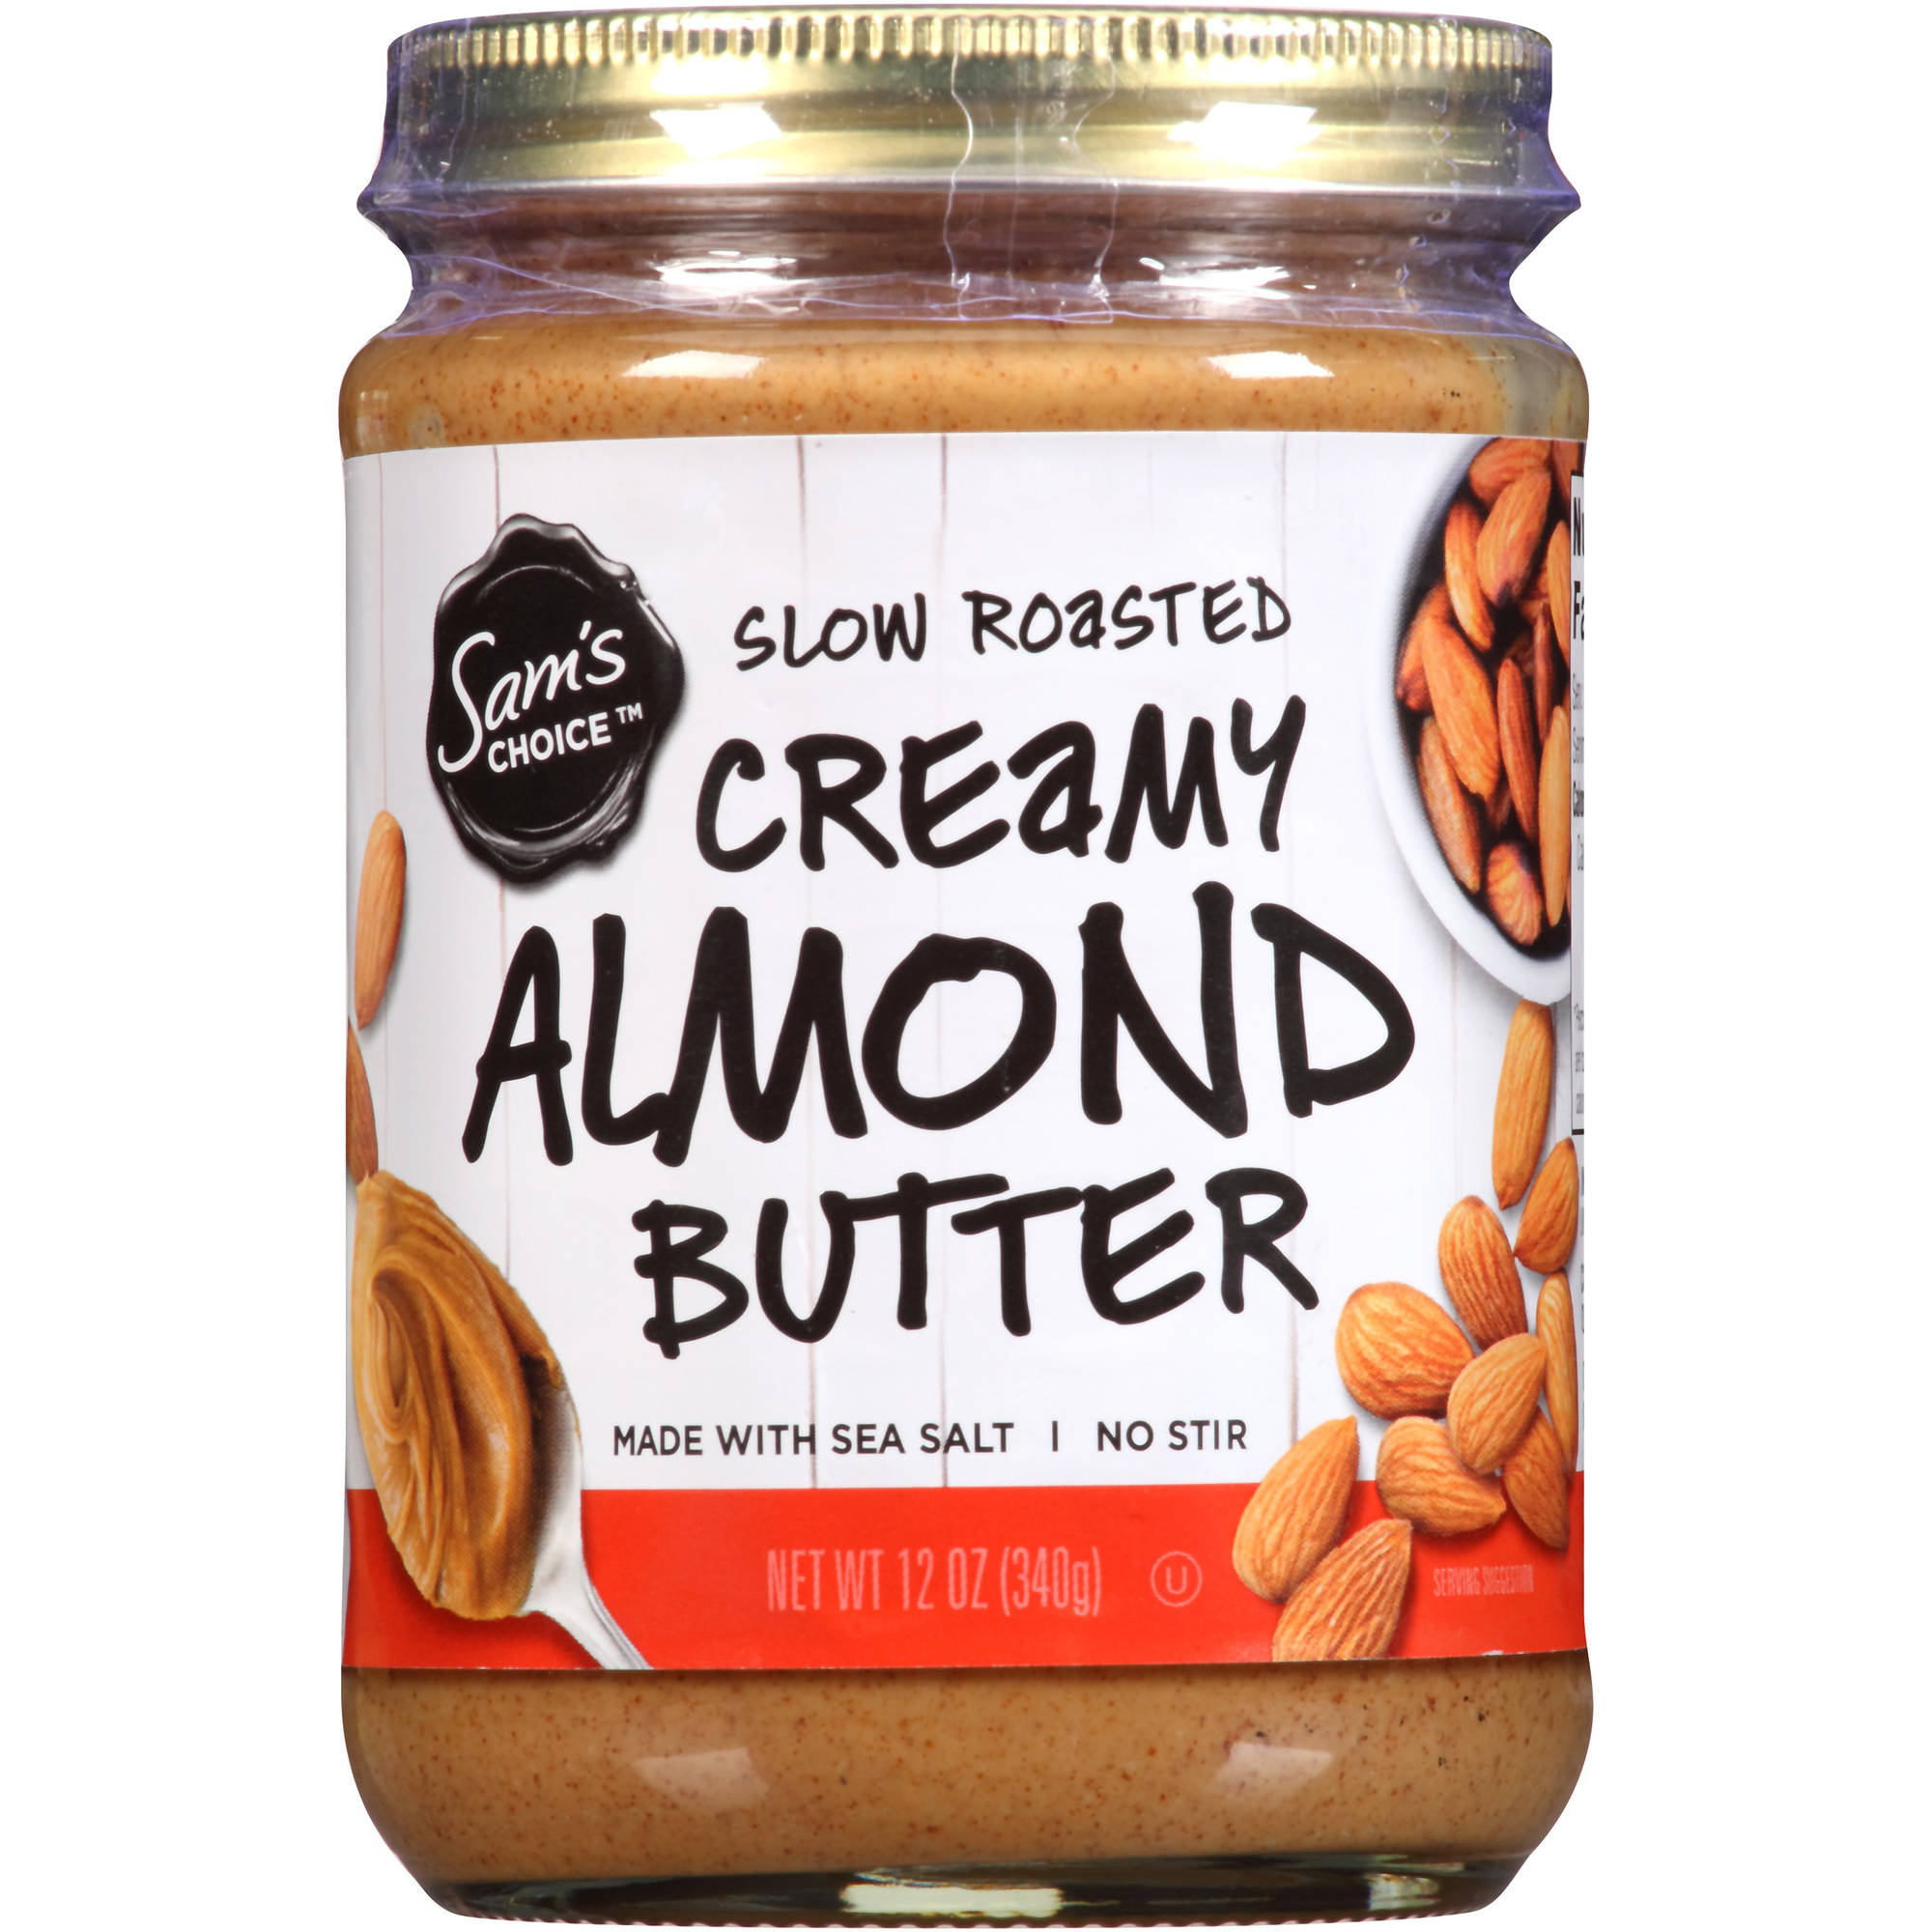 Sam's Choice Slow Roasted Creamy Almond Butter, 12 oz